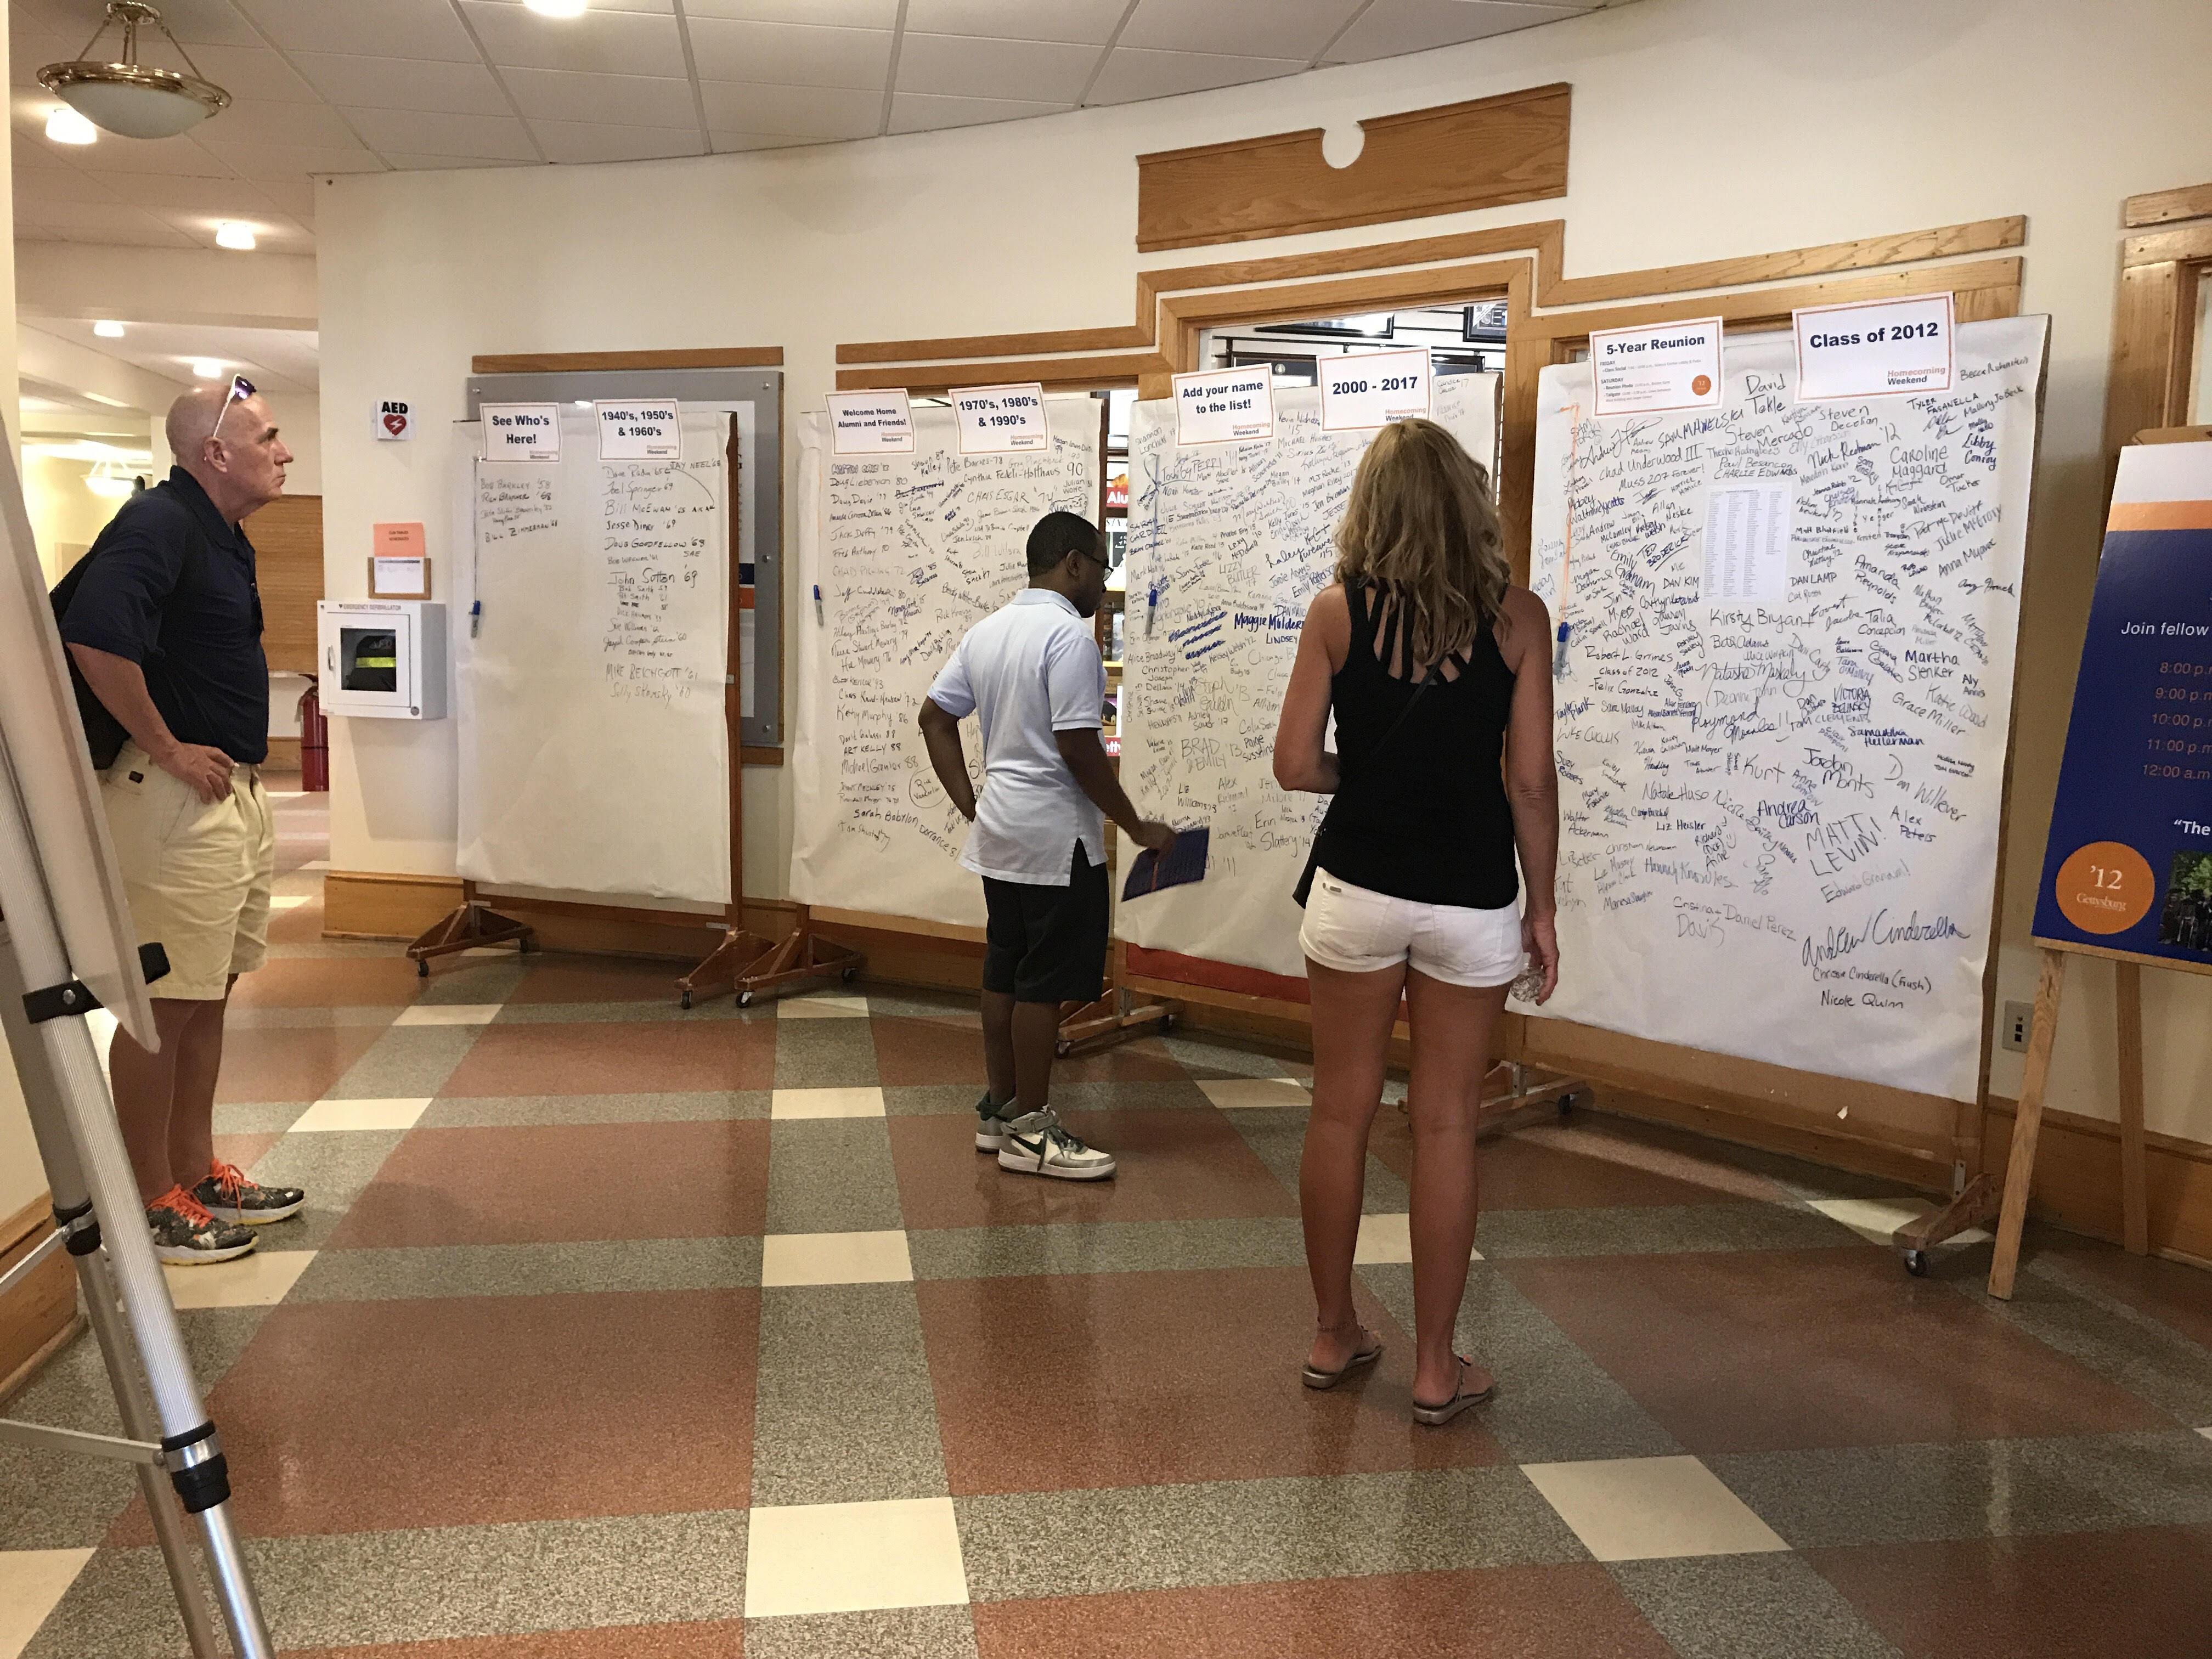 Alumni take a look at sign-in sheets in the College Union Building at Homecoming (Photo Maddie Neiman / The Gettysburgian)